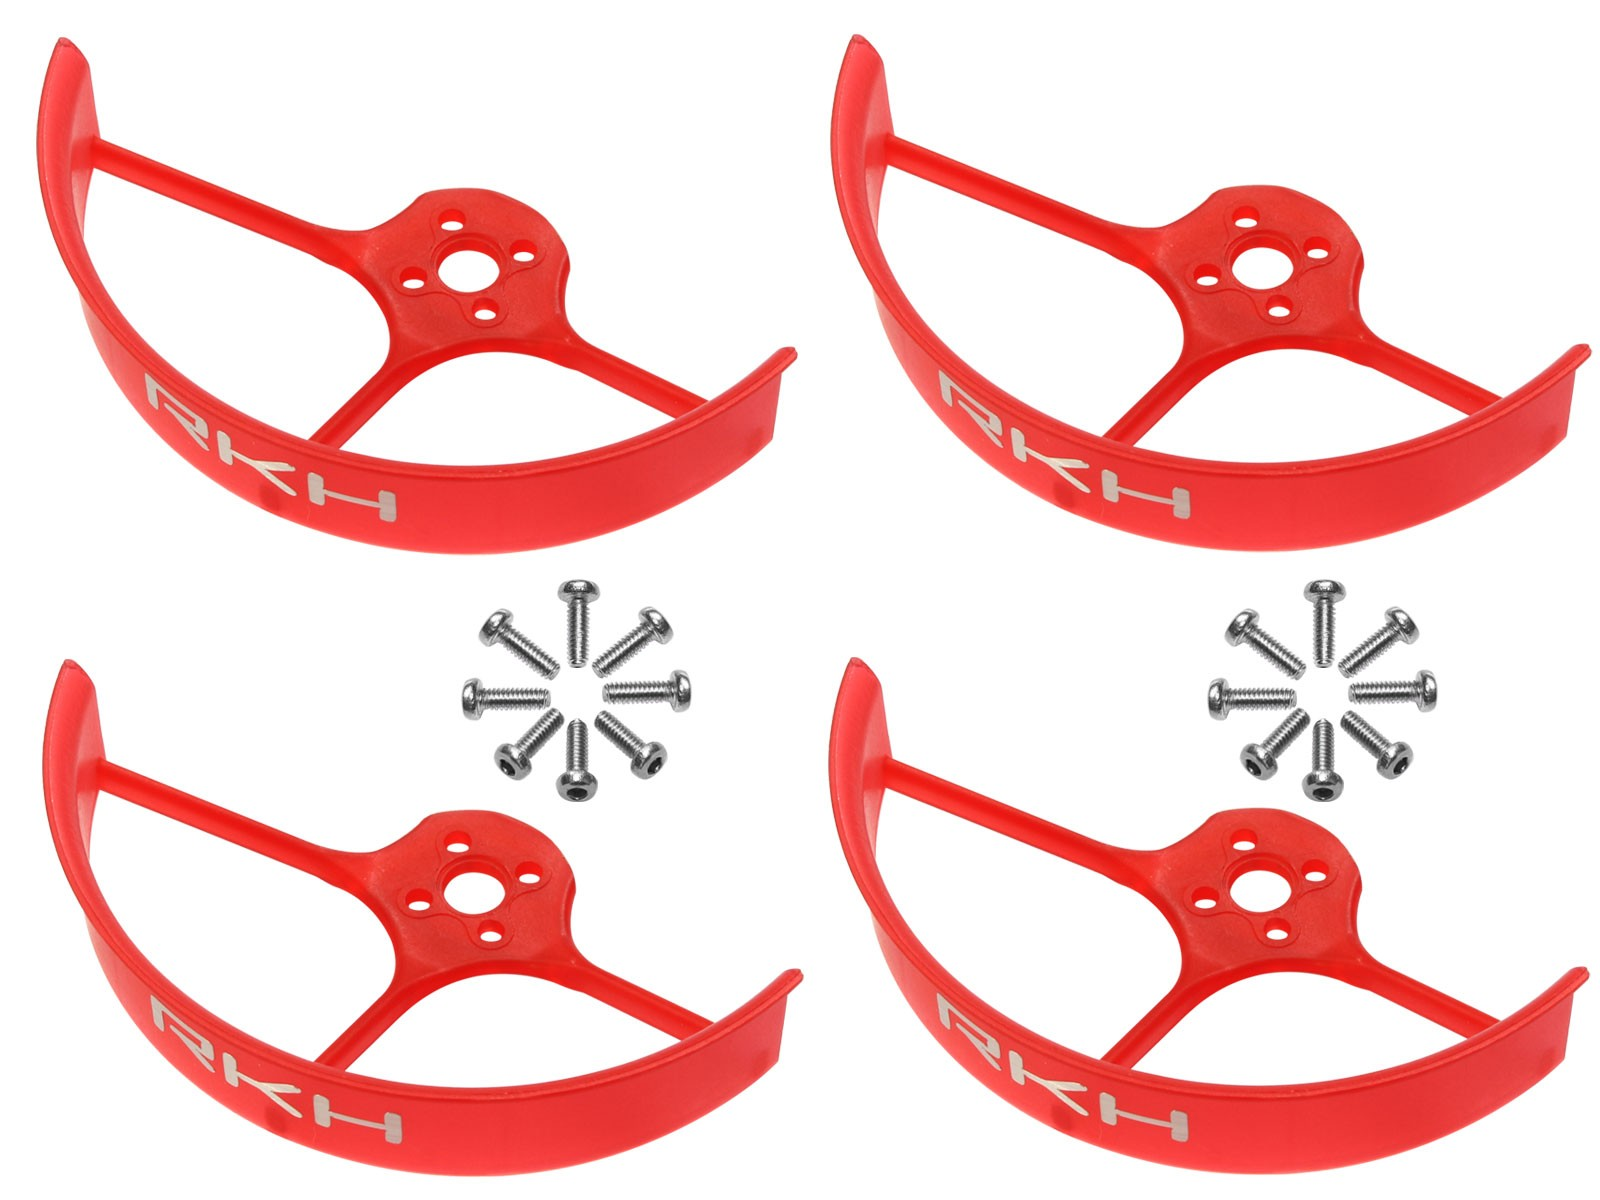 RKH 2 Inch Propeller Guard (4) (Red)